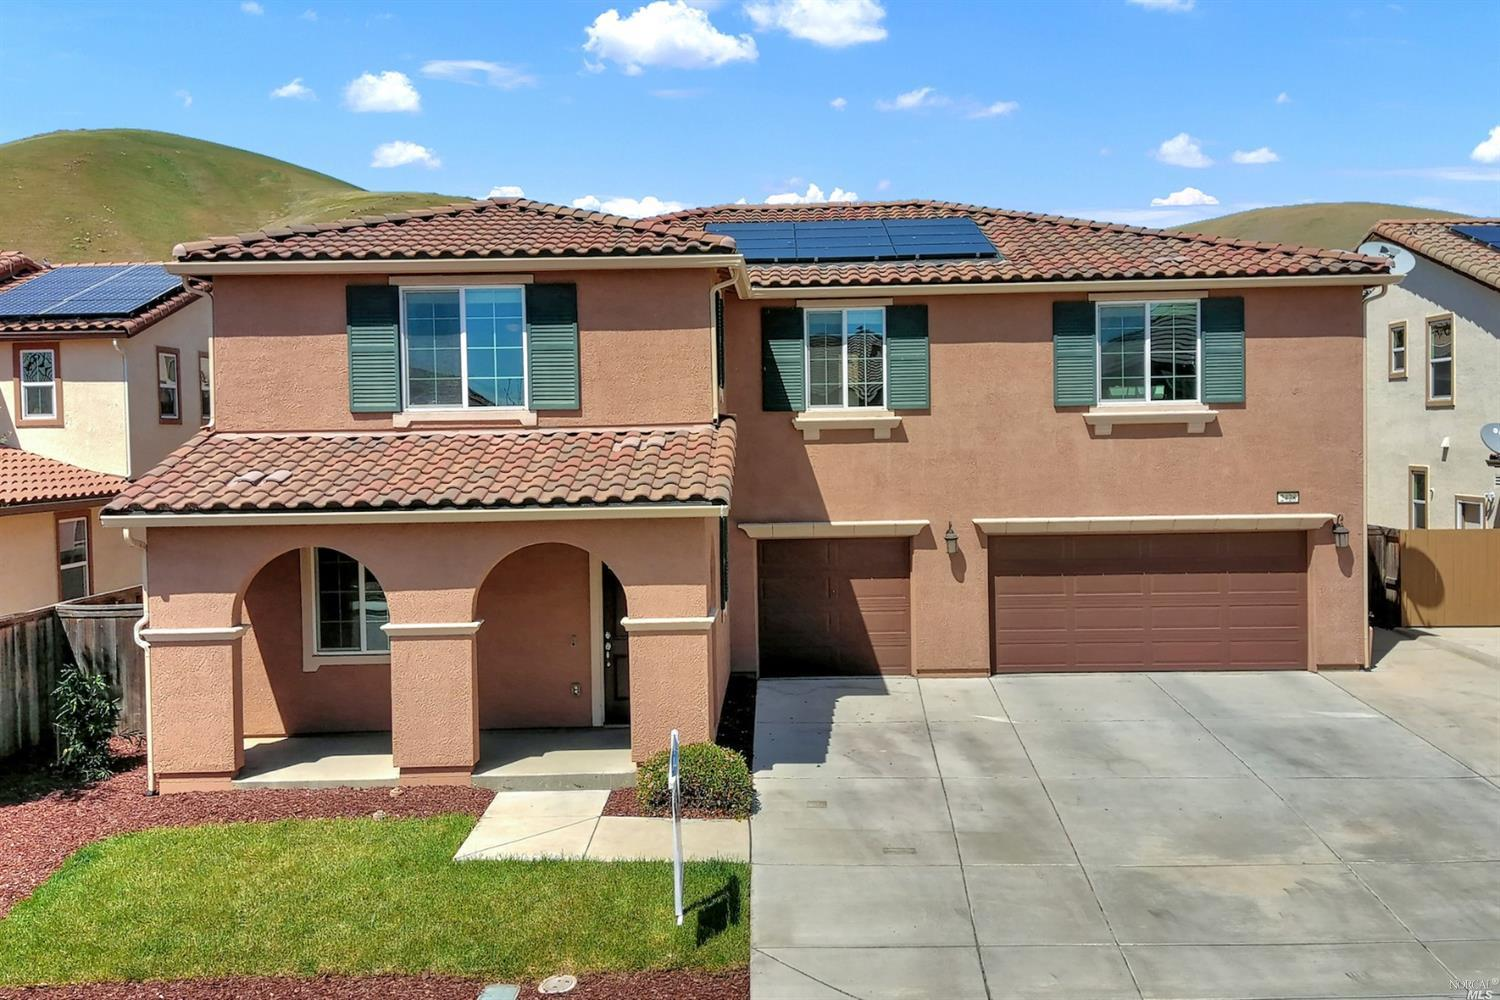 Beautifully Spacious Goldridge home Built in 2014. Features include Owned Solar, Chef's Kitchen with